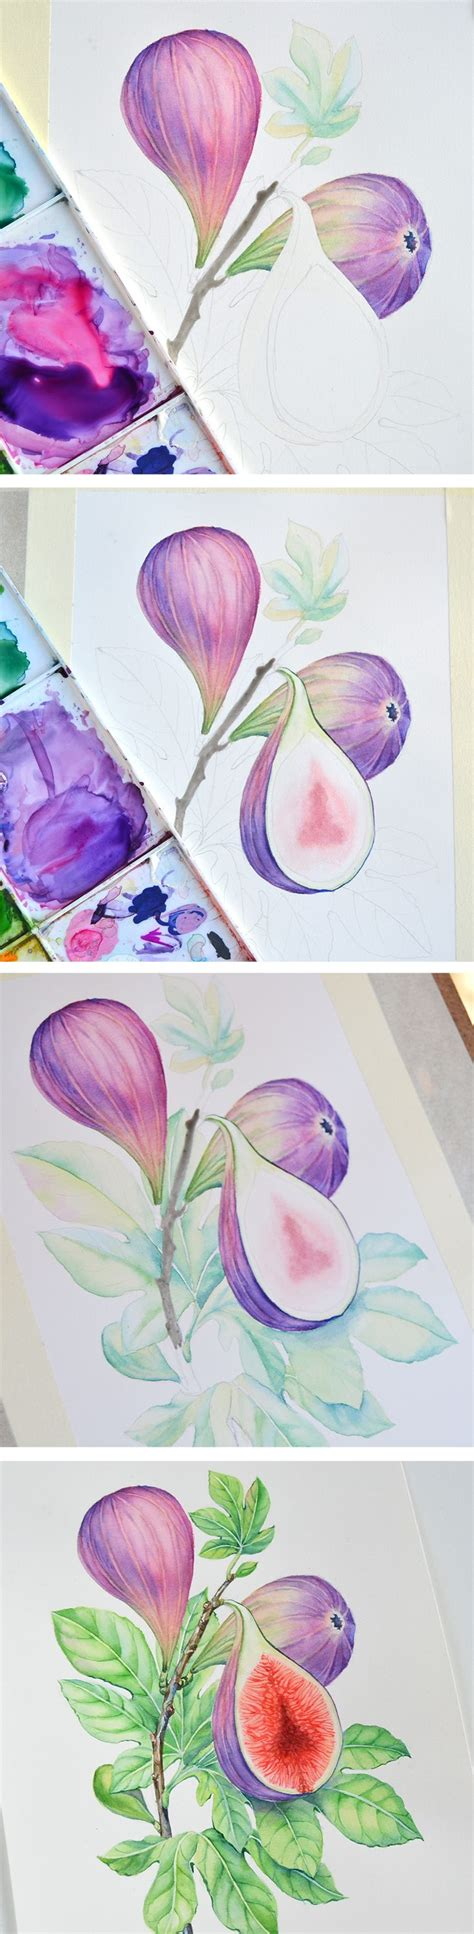 tutorial illustrator watercolor 1000 images about my watercolor illustrations on